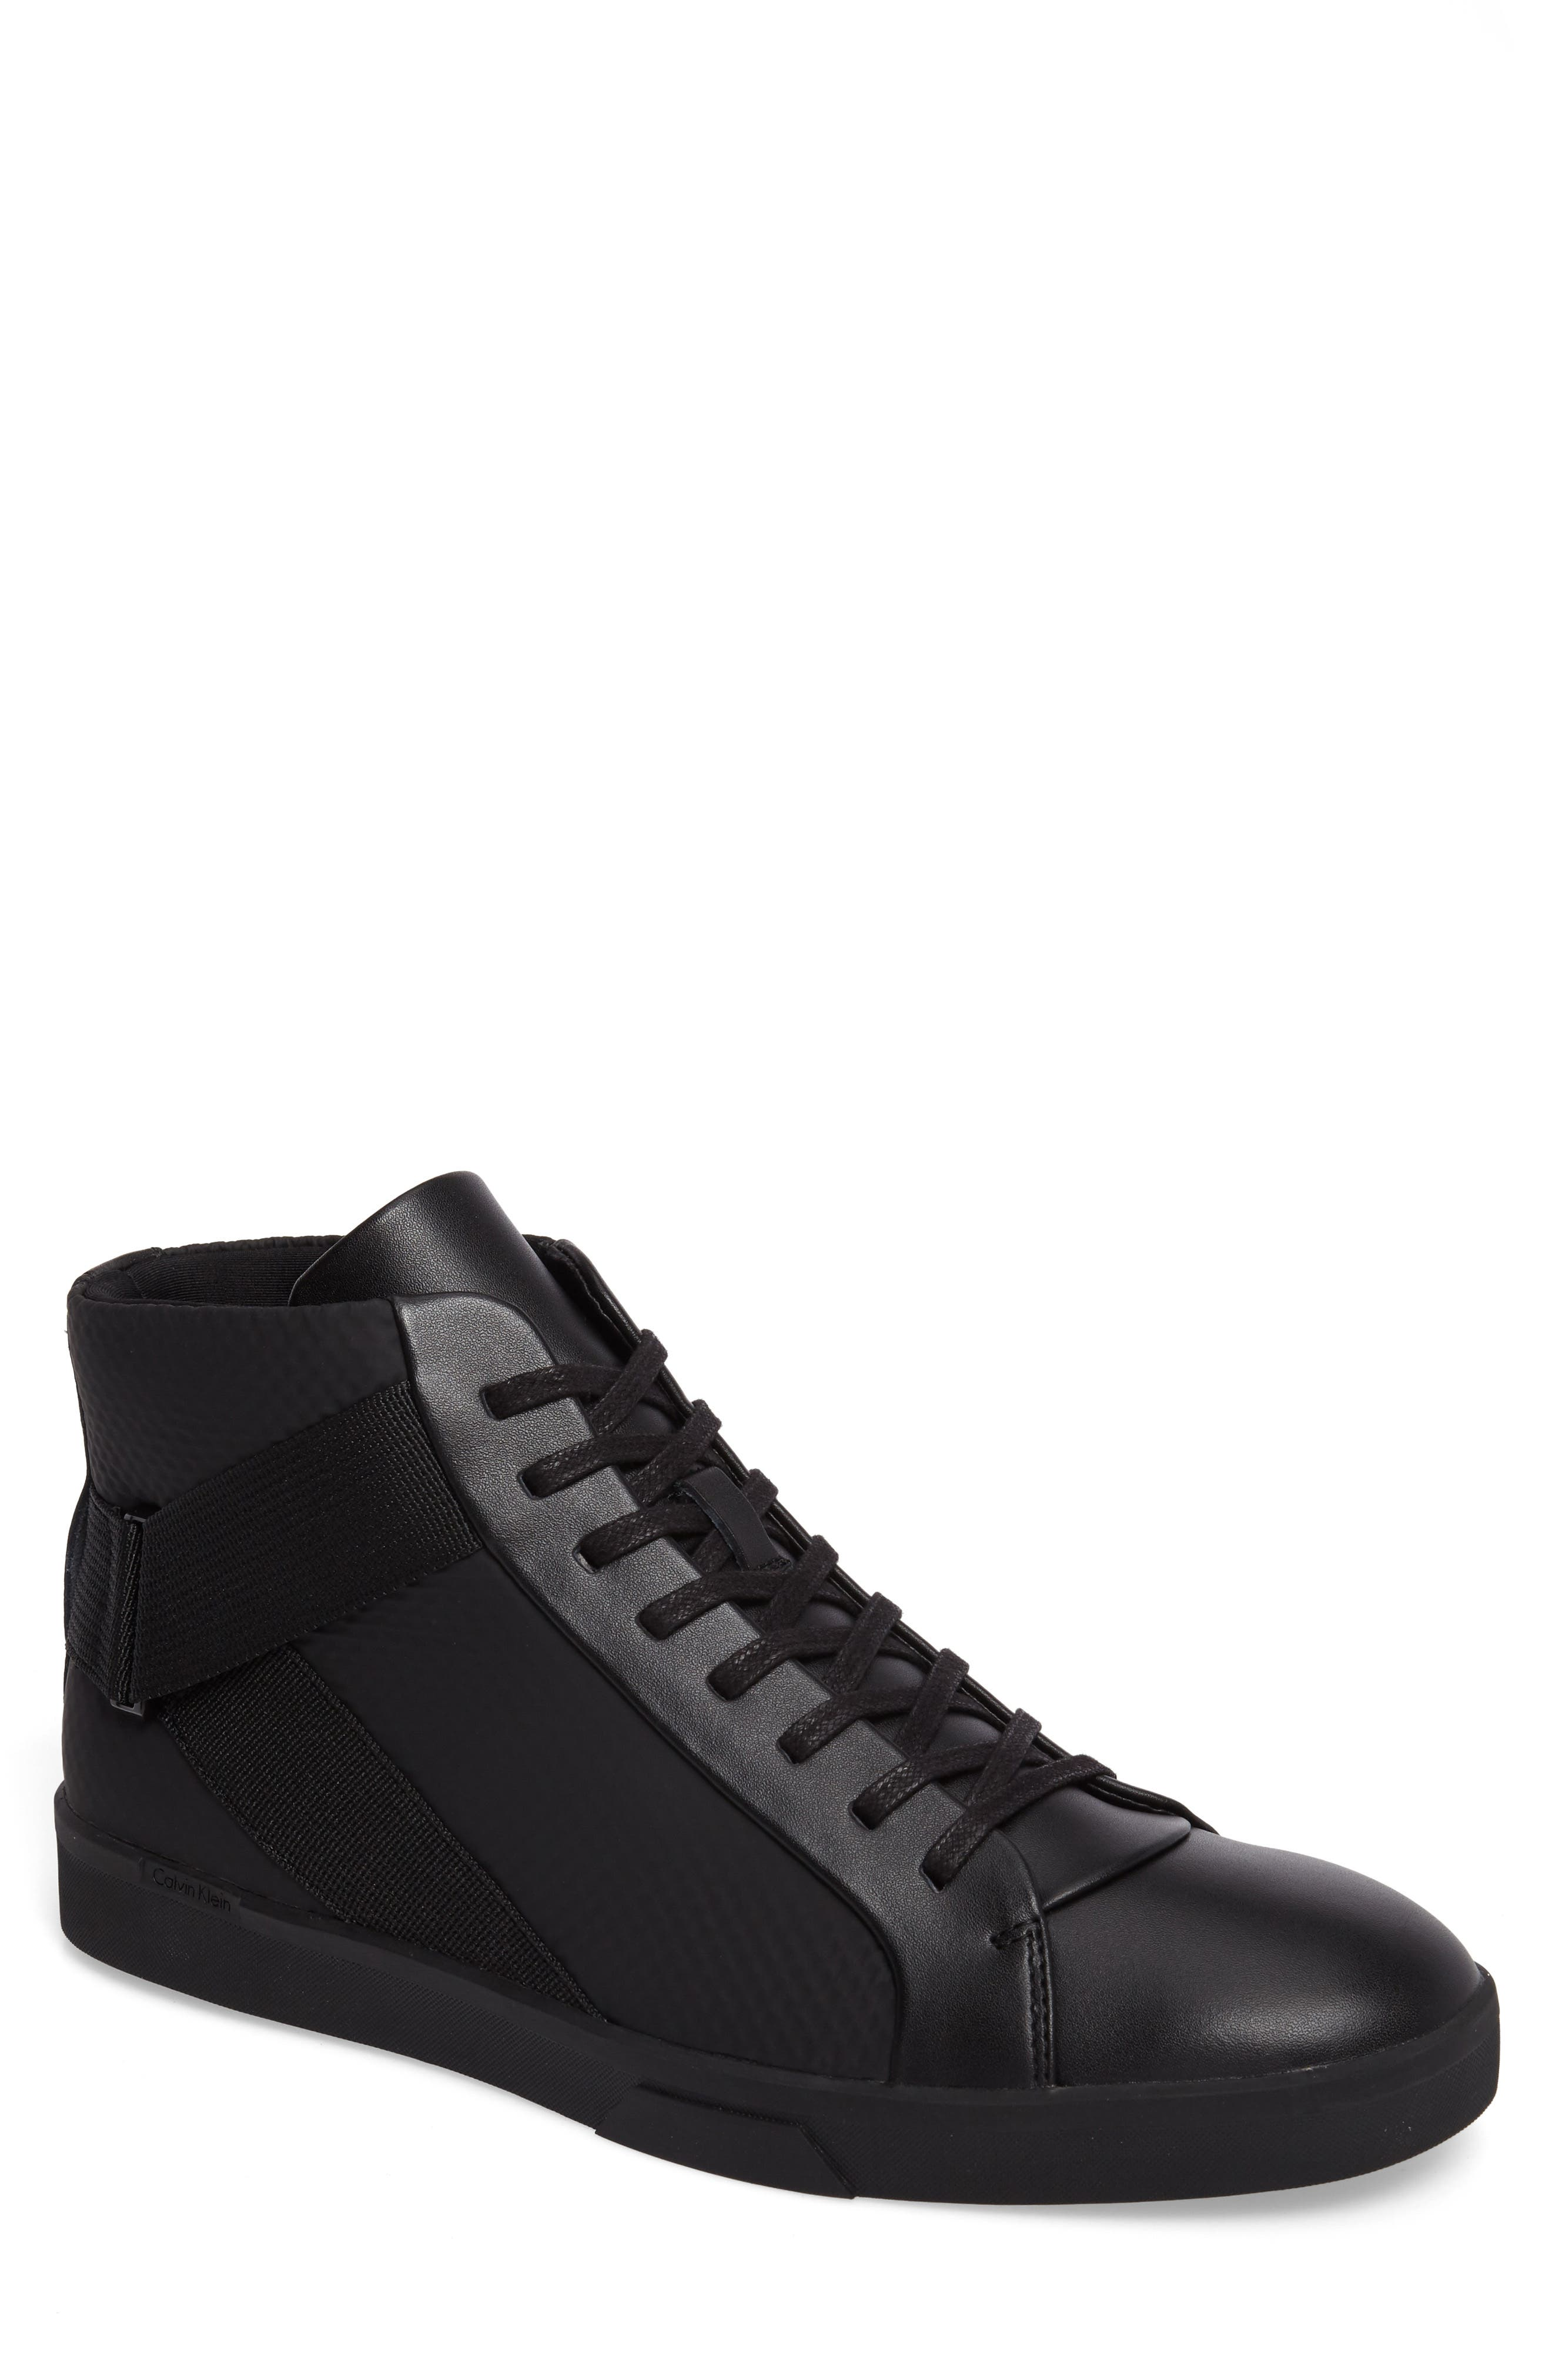 Irvin Sneaker,                         Main,                         color, 001